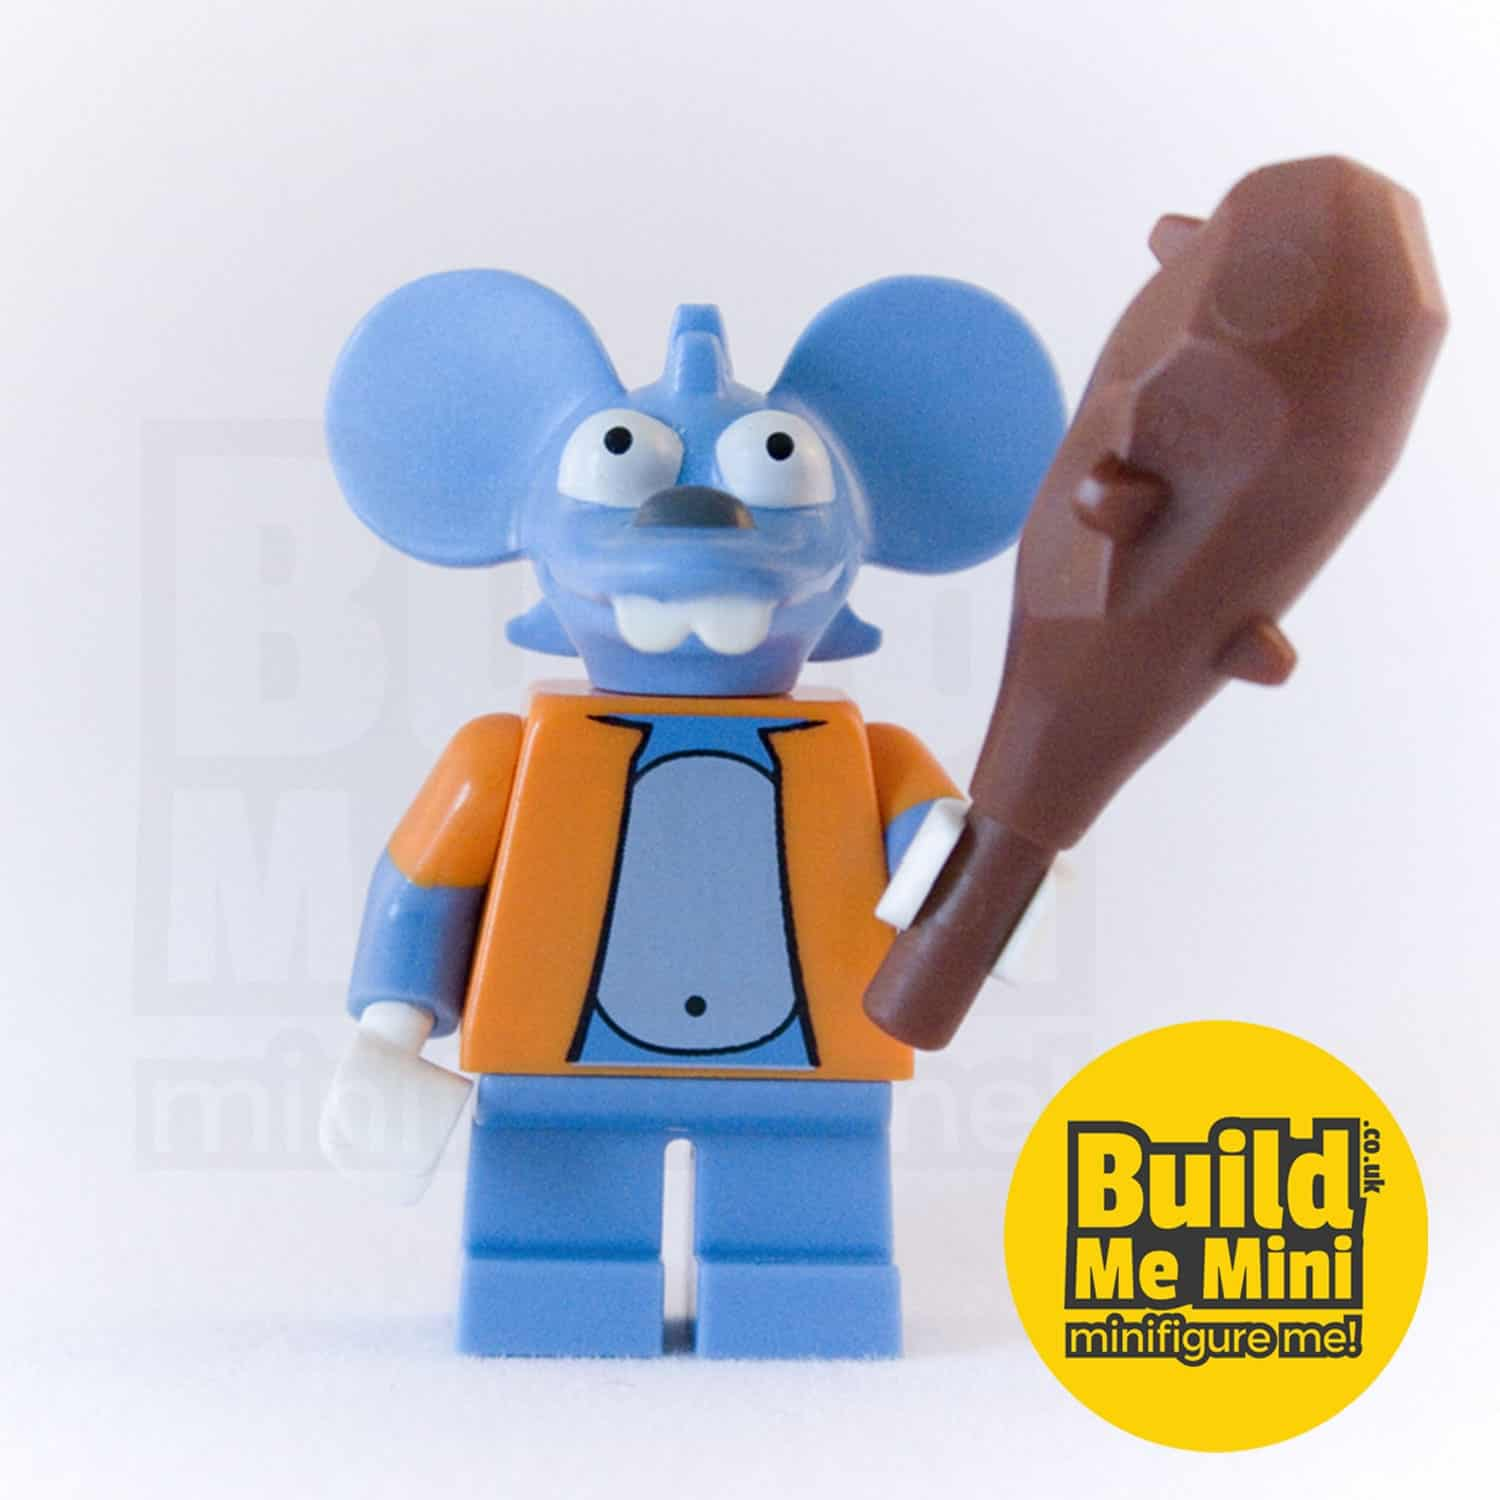 LEGO Simpsons Itchy Minifigure